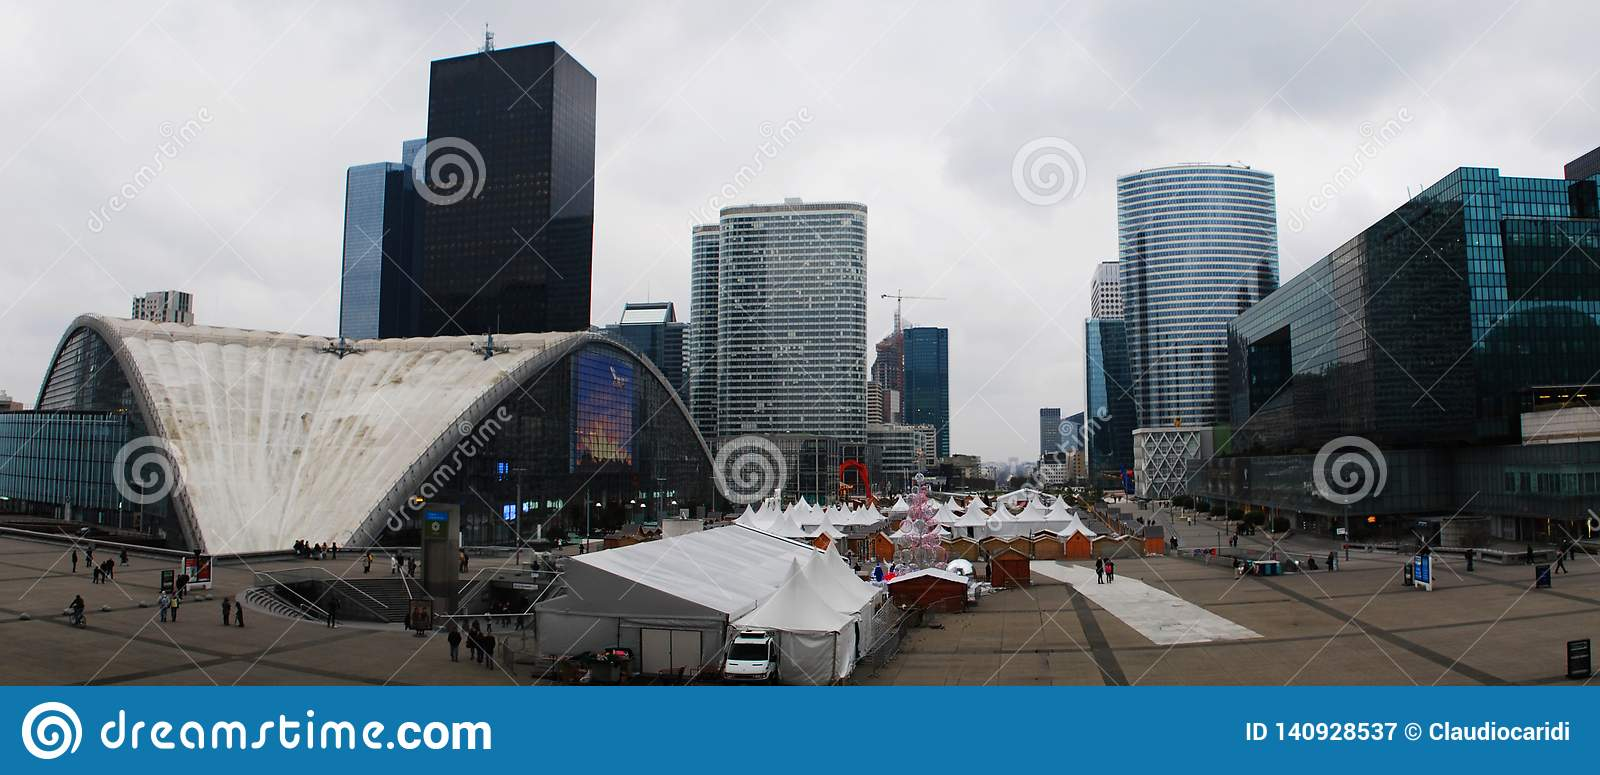 Panorama view of the Defense, business district in Paris, France